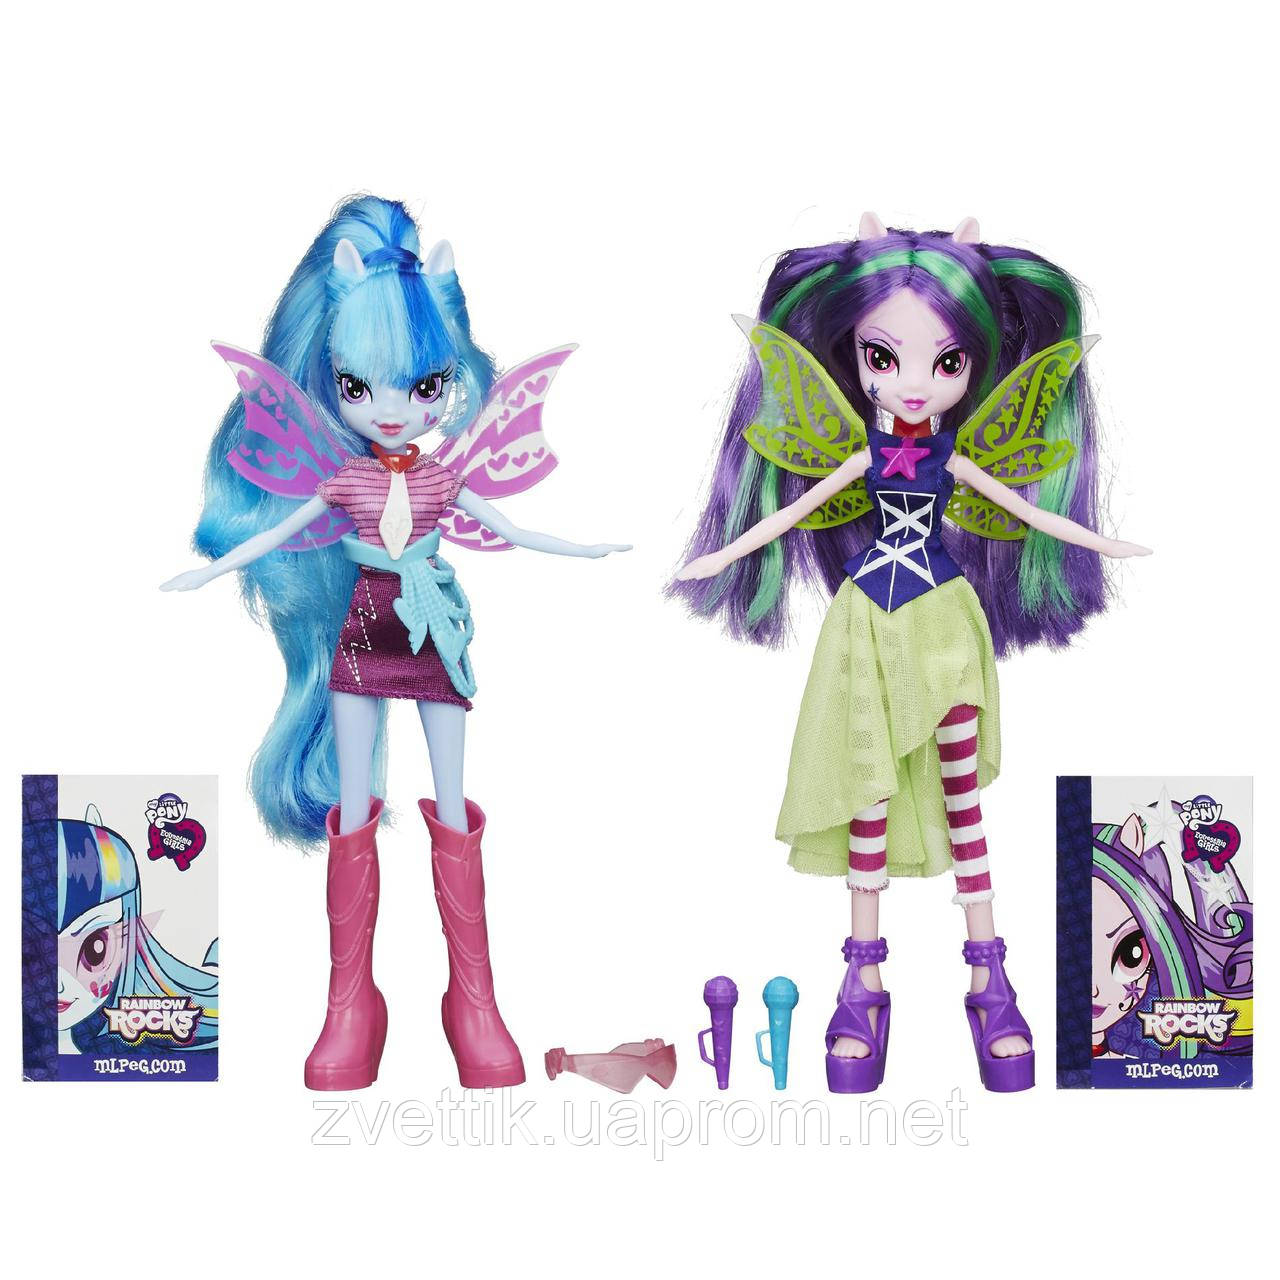 Куклы My Little Pony Equestria Girls Aria Blaze and Sonata Dusk Ария и Соната